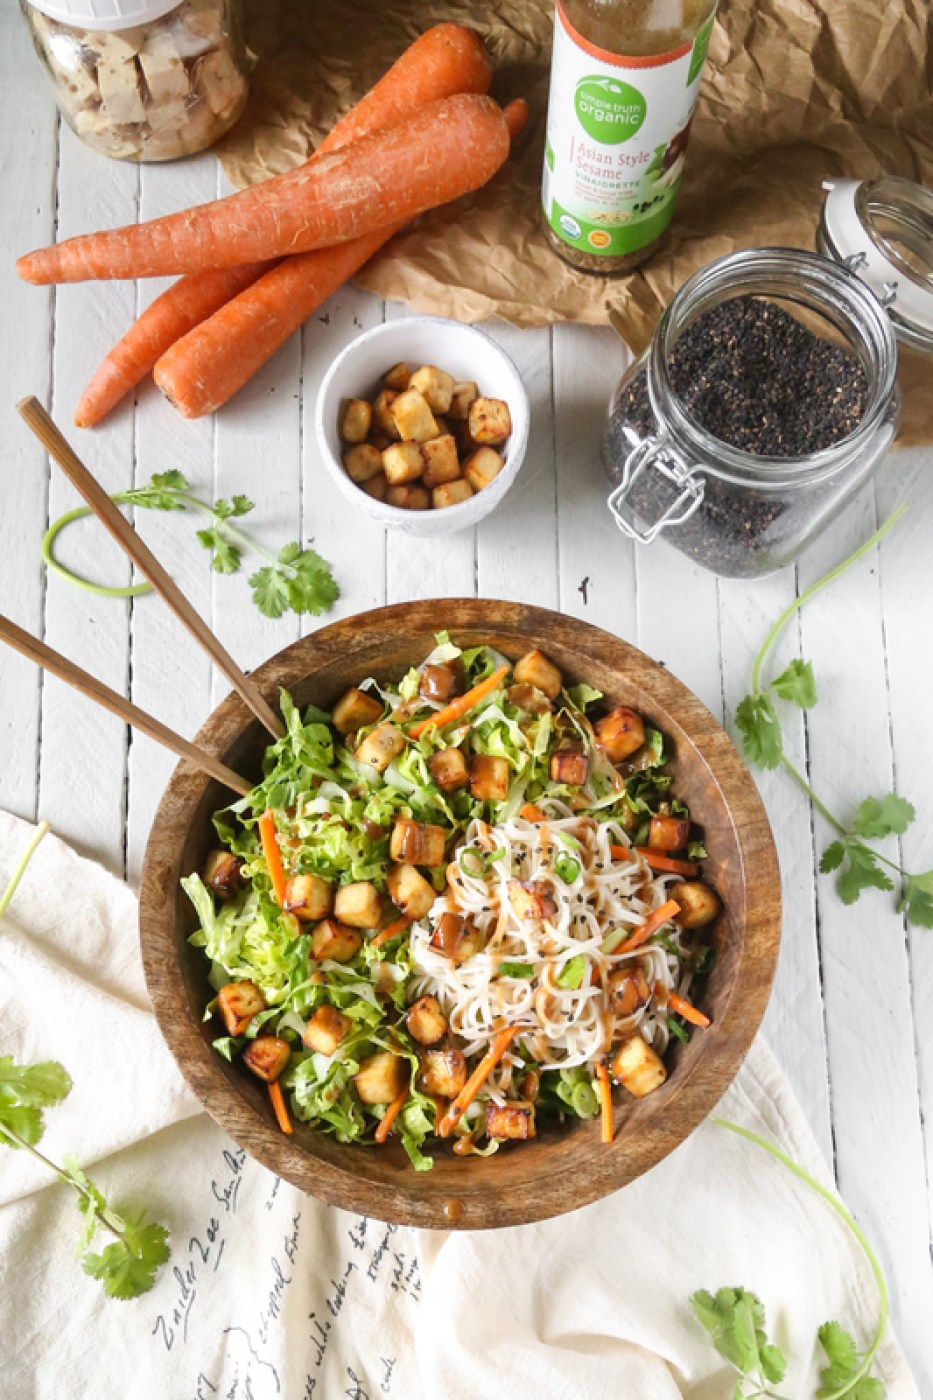 Asian Sesame Air-Fried Tofu Noodle Salad | Gluten-Free & Vegan | The Plant Philosophy